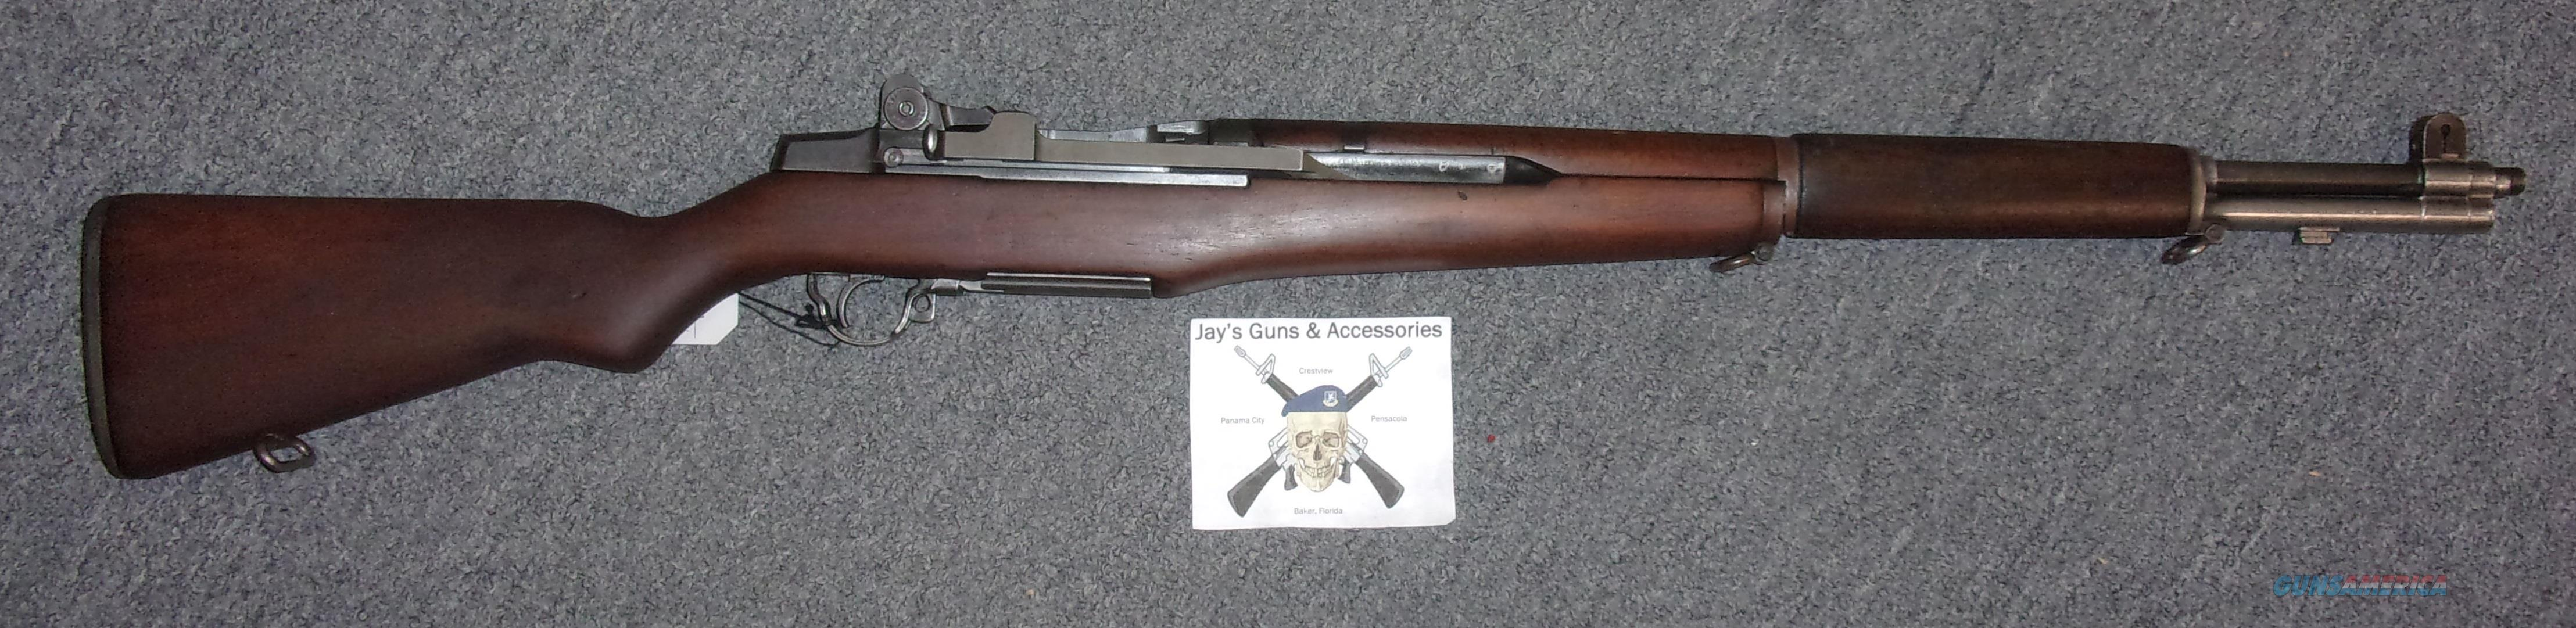 H&R Arms, Co M1 Garand  Guns > Rifles > Harrington & Richardson Rifles